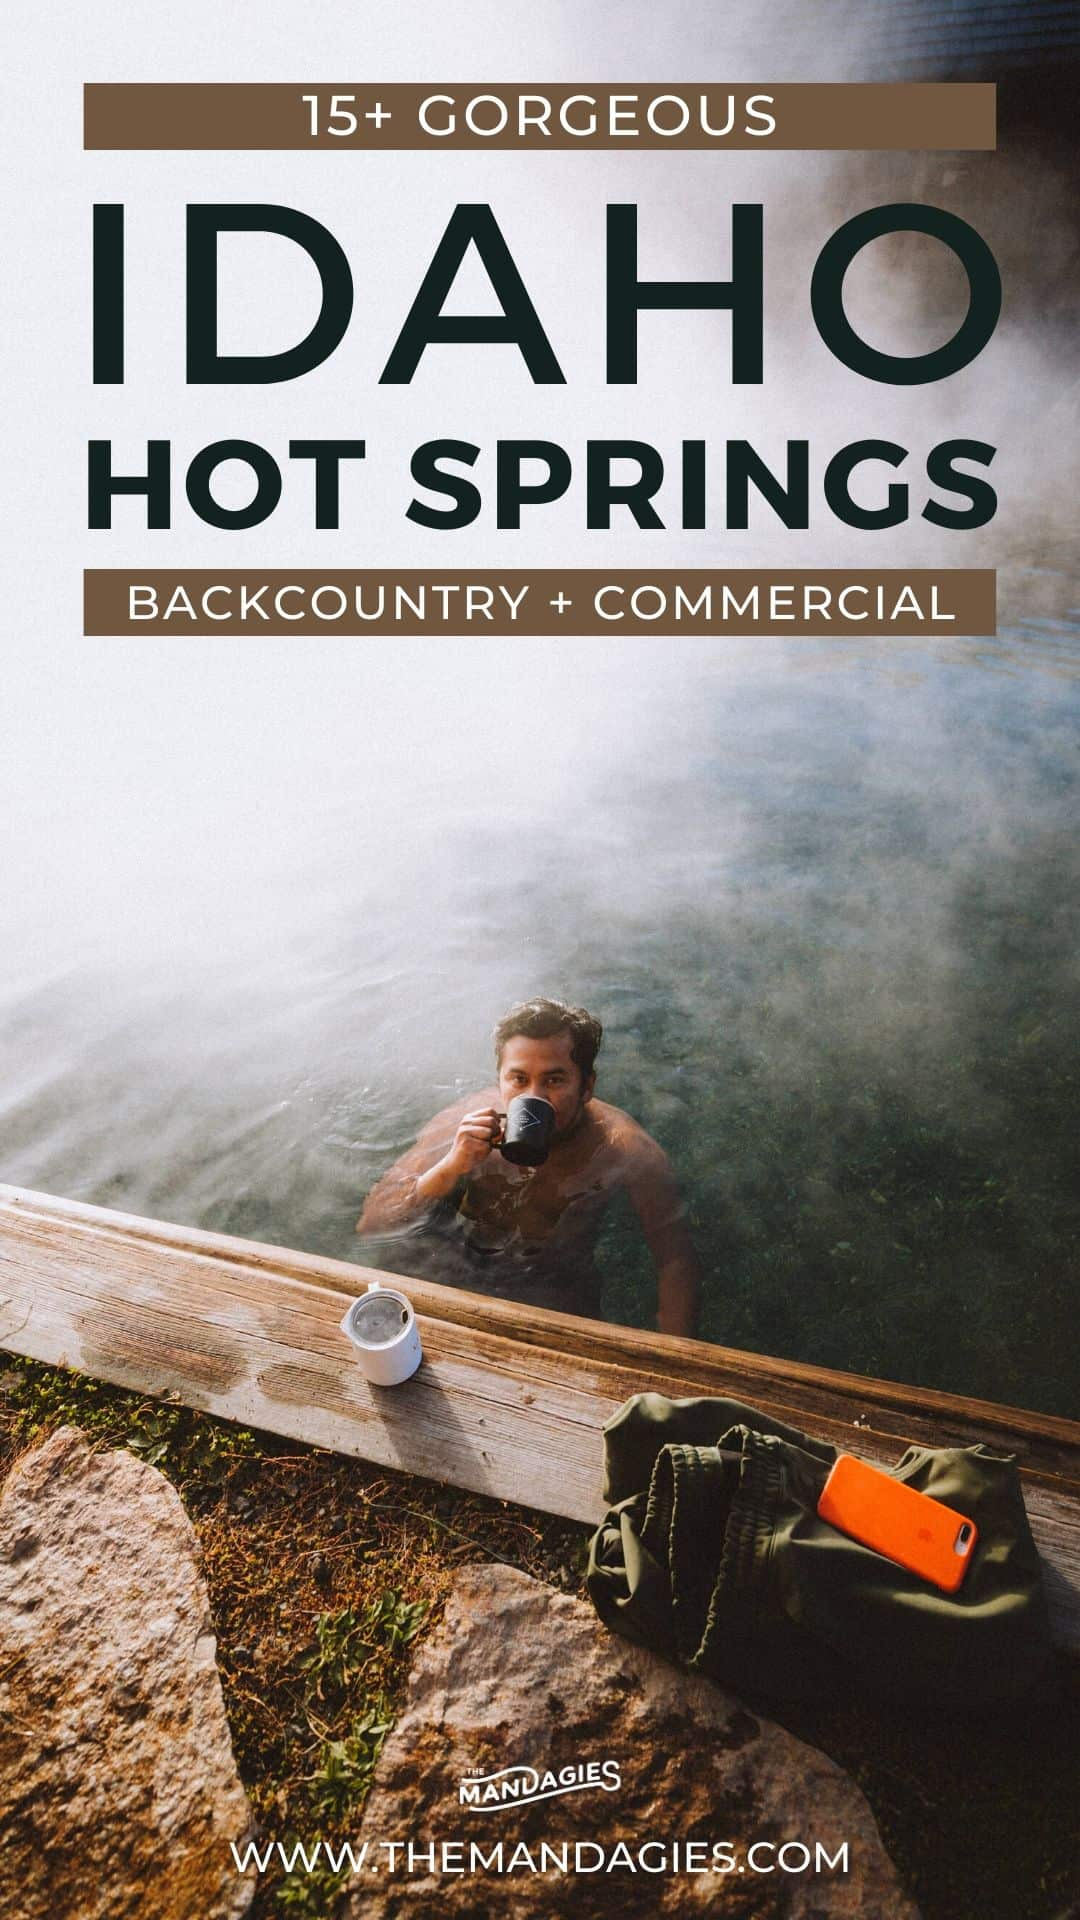 So you're searching for the best Idaho hot springs for your Idaho road trip adventure? You've come to the right places! We're sharing a bucket list of hot springs in Idaho, including a map, descriptions of the pools, and deep dives into specific locations! Save this for your next epic trip to Idaho! #idaho #hotsprings #idahohotsprings #kirkhamhotsprings #burgdorf #boise #coeurdalene #travel #adventure #roadtrip #backcountry #nature #photography